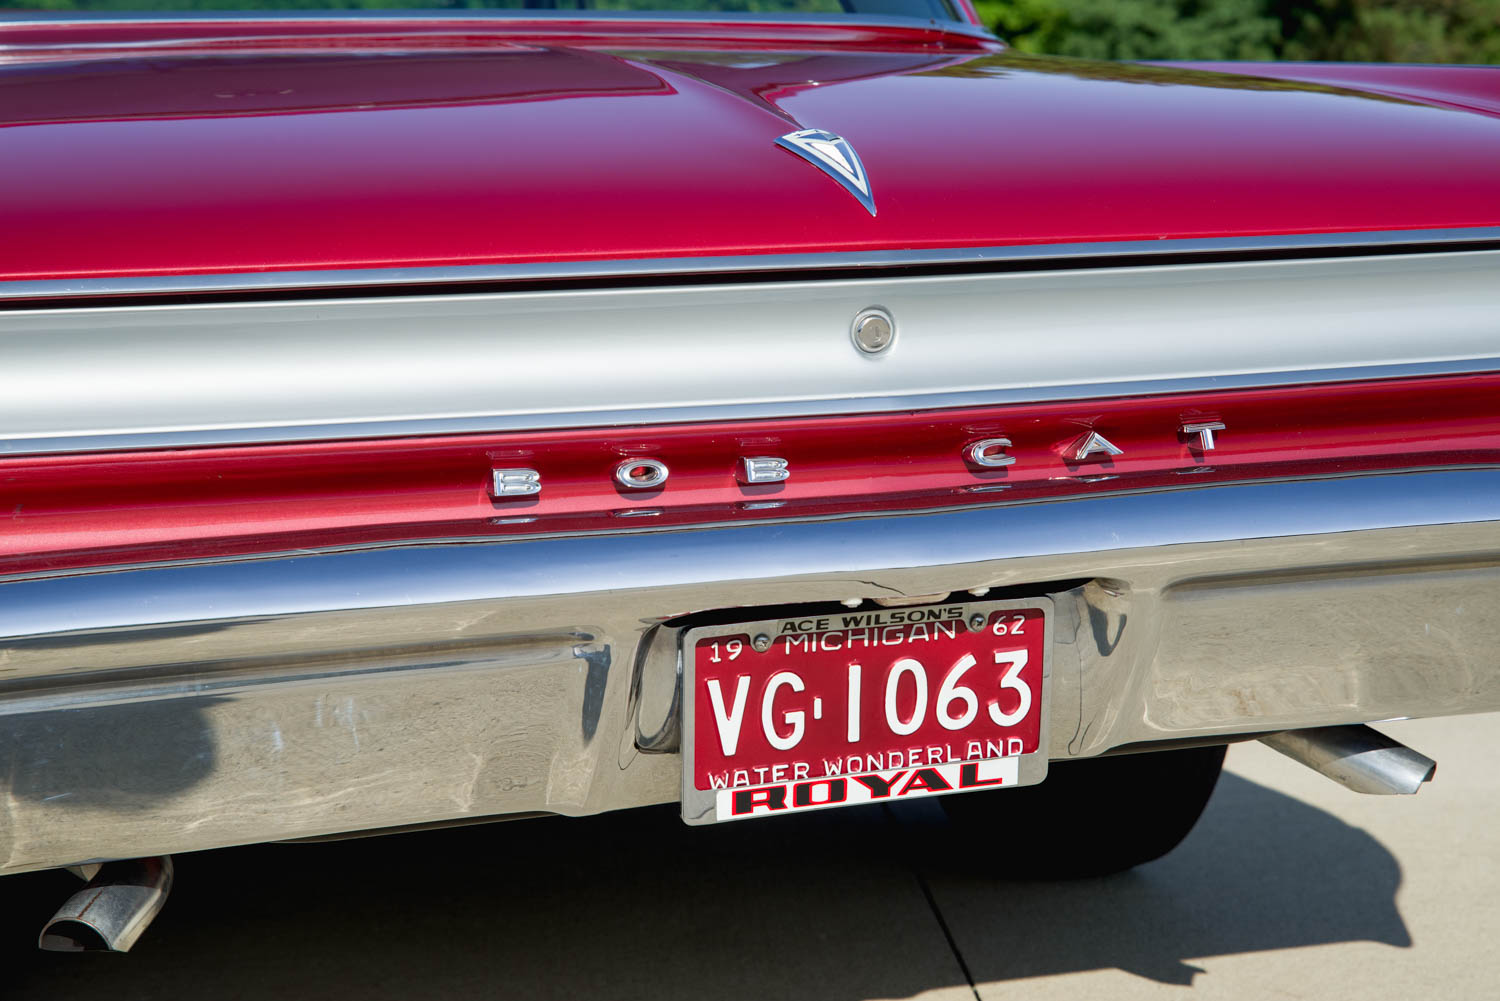 """To create the BOBCAT lettering on the rear of the automobile, Royal used four letters from the original """"Pontiac"""" badging and swiped a couple of """"Bs"""" from Bonneville part bins. Note the Royal license plate frame."""